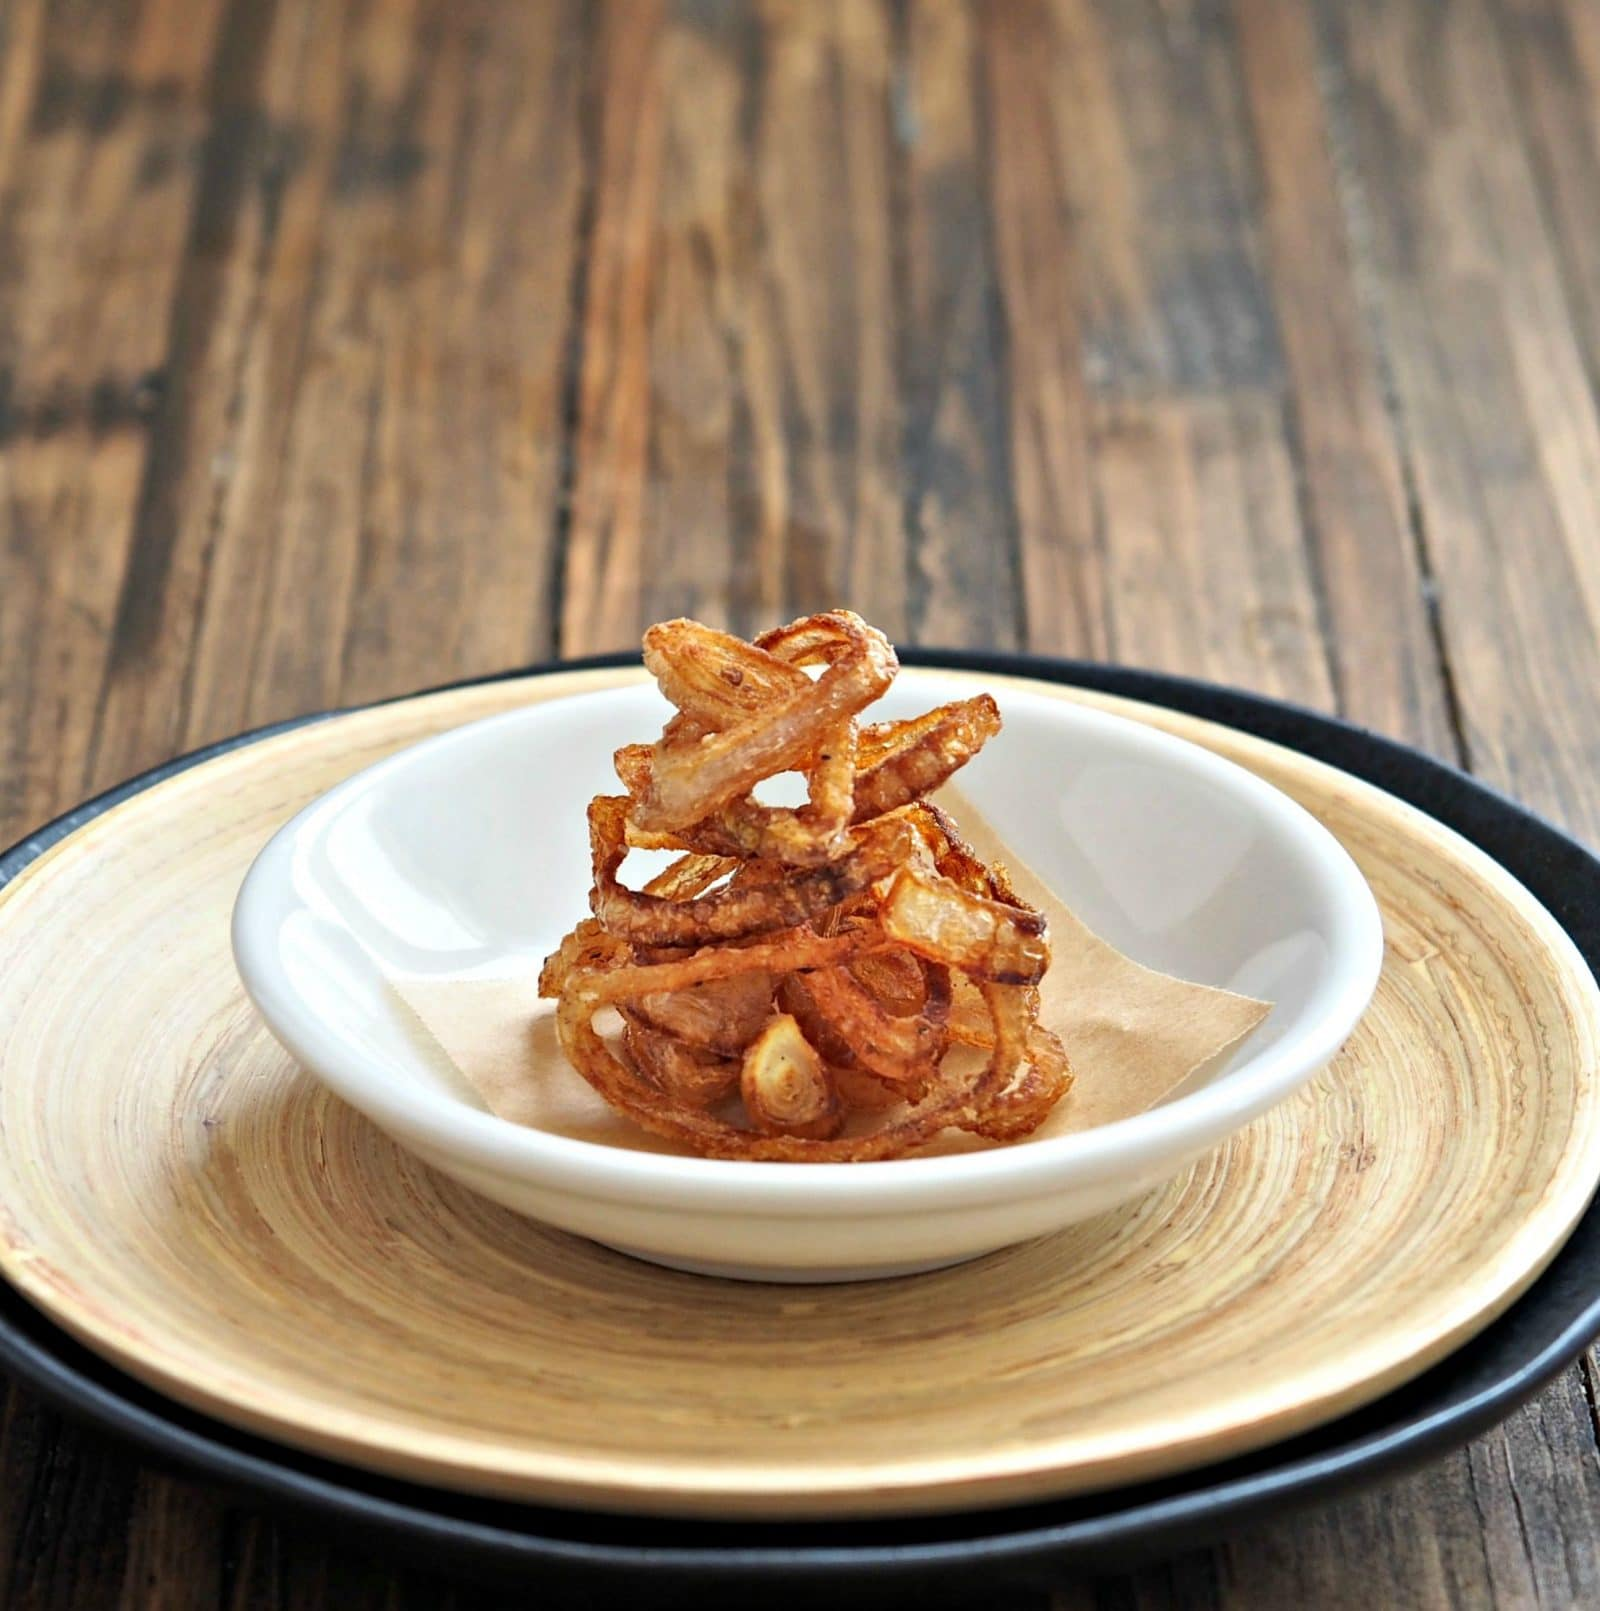 Crispy Shallots. Use Crispy Shallots to add flavor & texture to many of your favorite foods: sandwiches, steak, roast beef, chicken, eggs (to name a few). Simply Sated